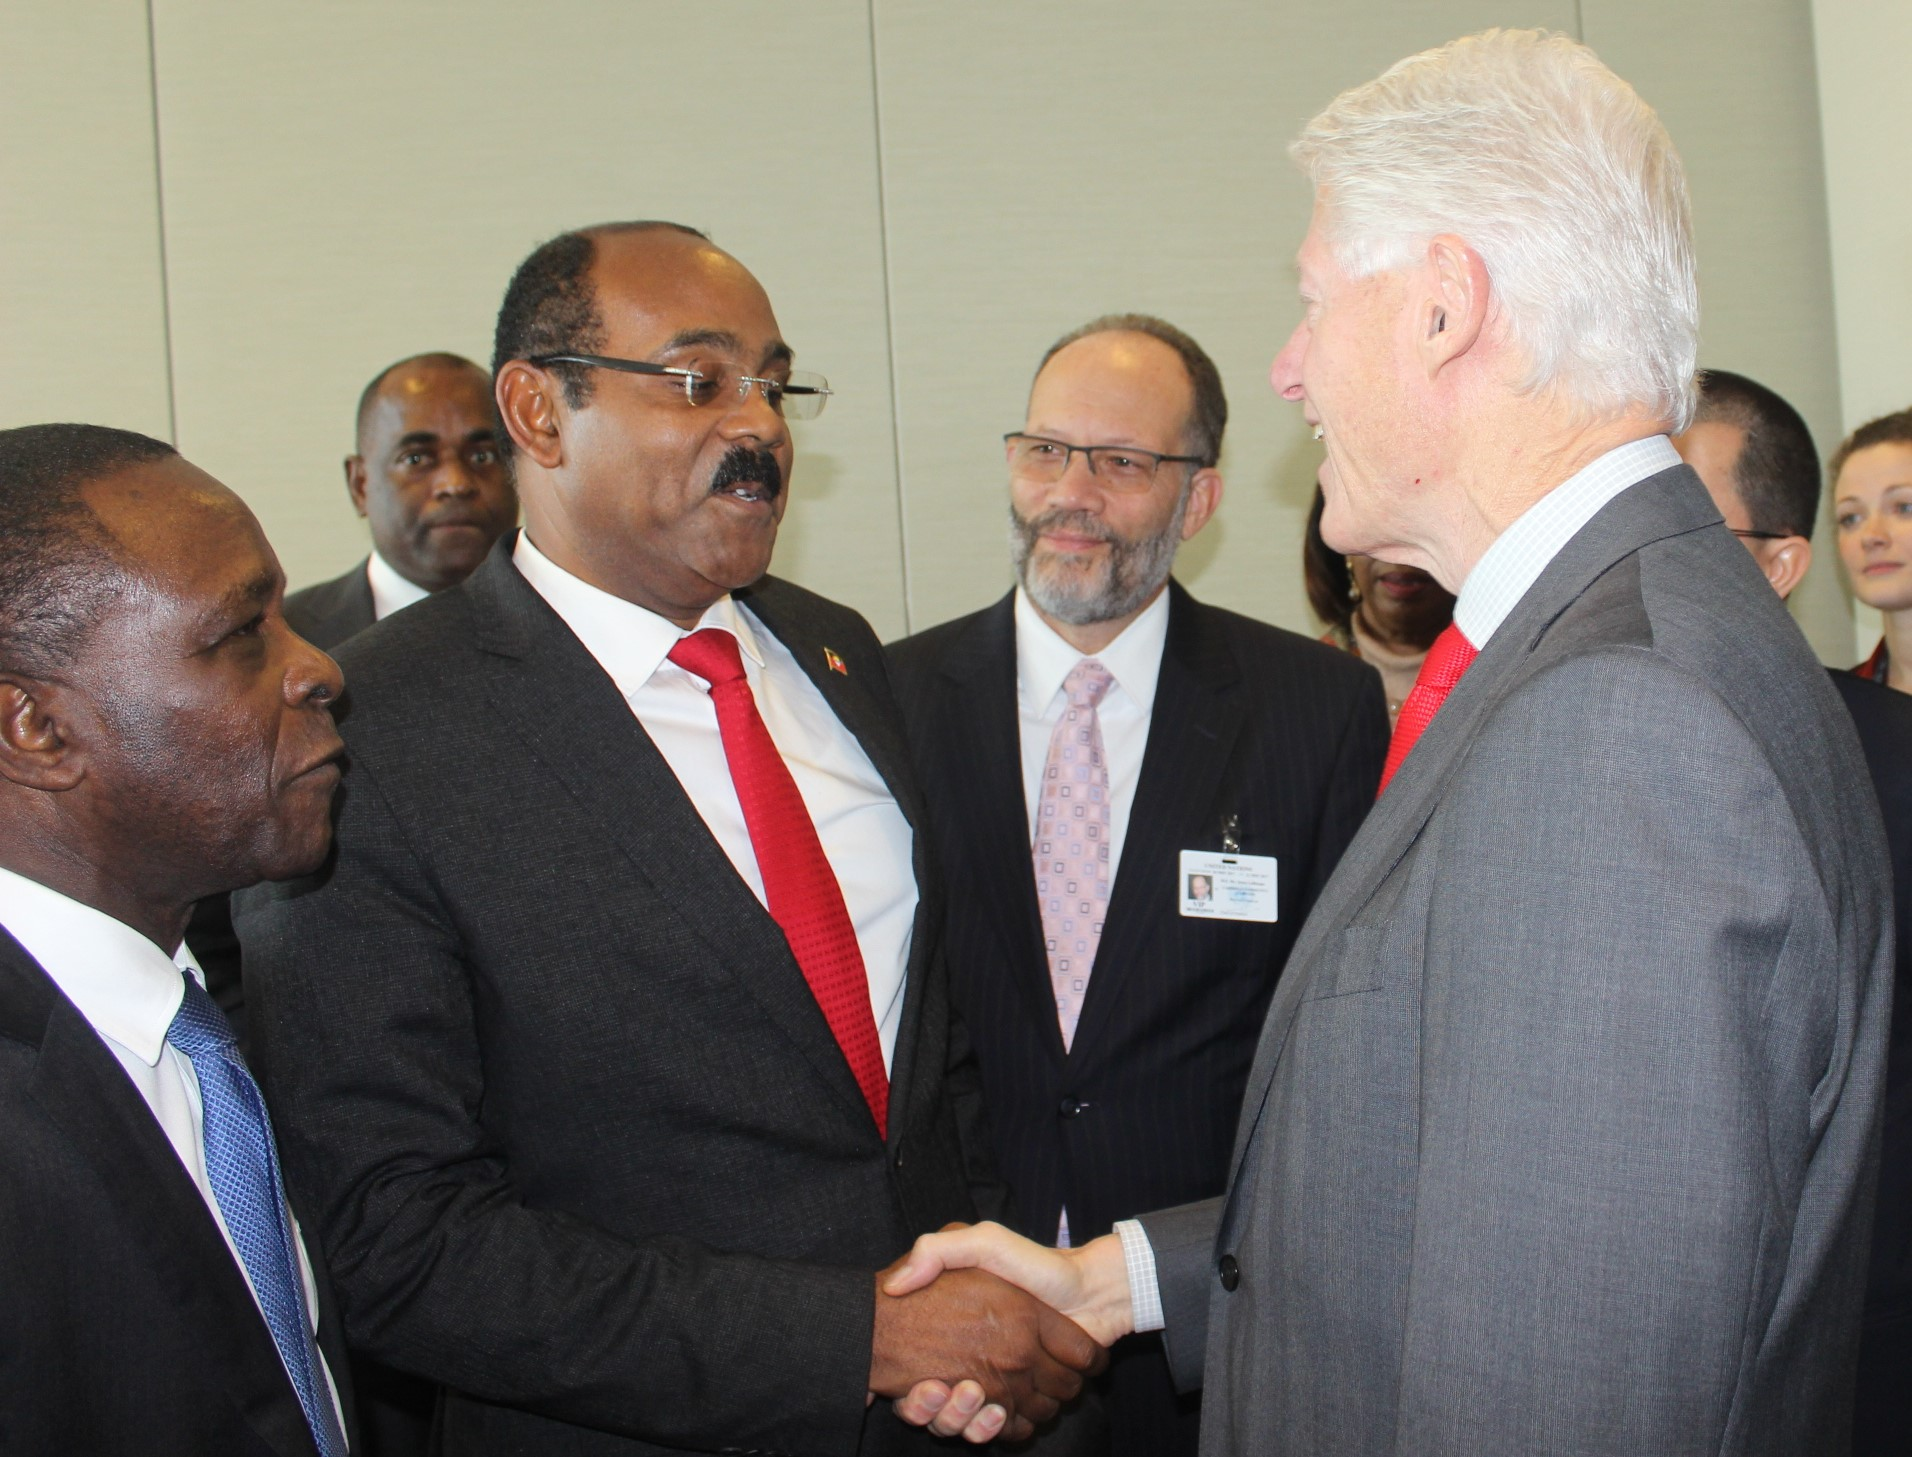 Former US President Bill Clinton was a Special Guest of the Conference